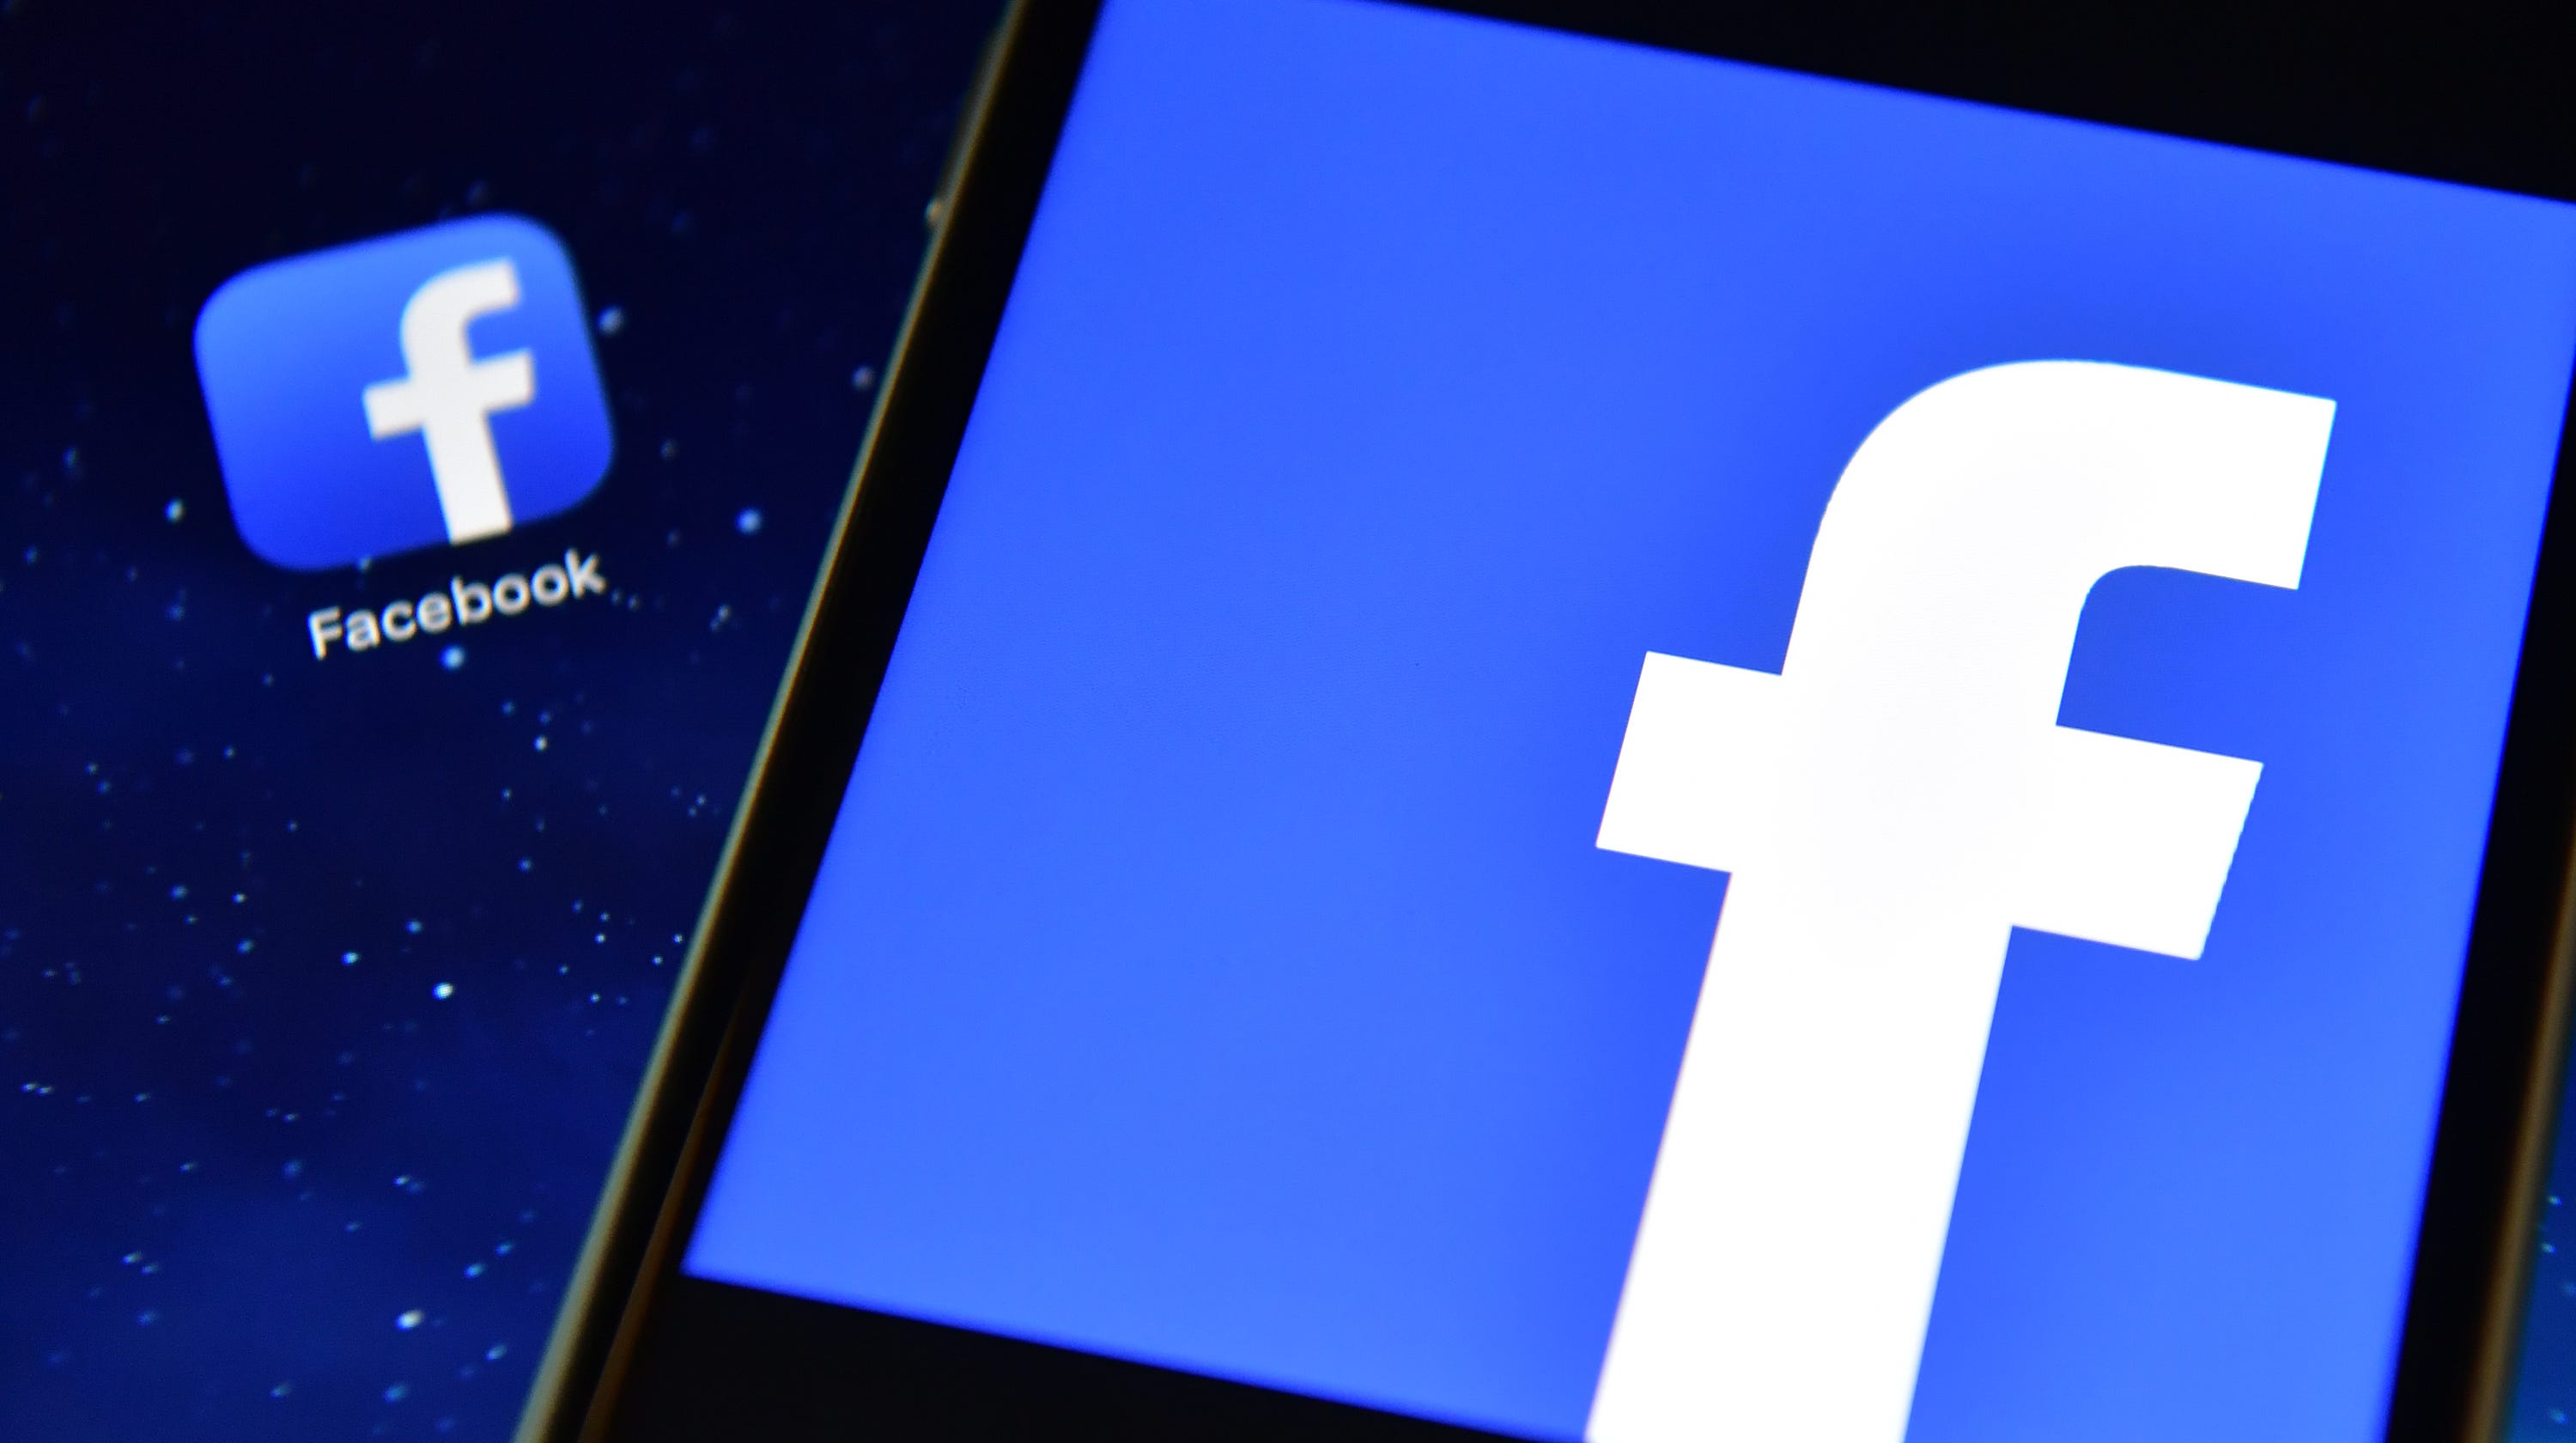 Facebook hoax messages: Experts advise not to forward to friends